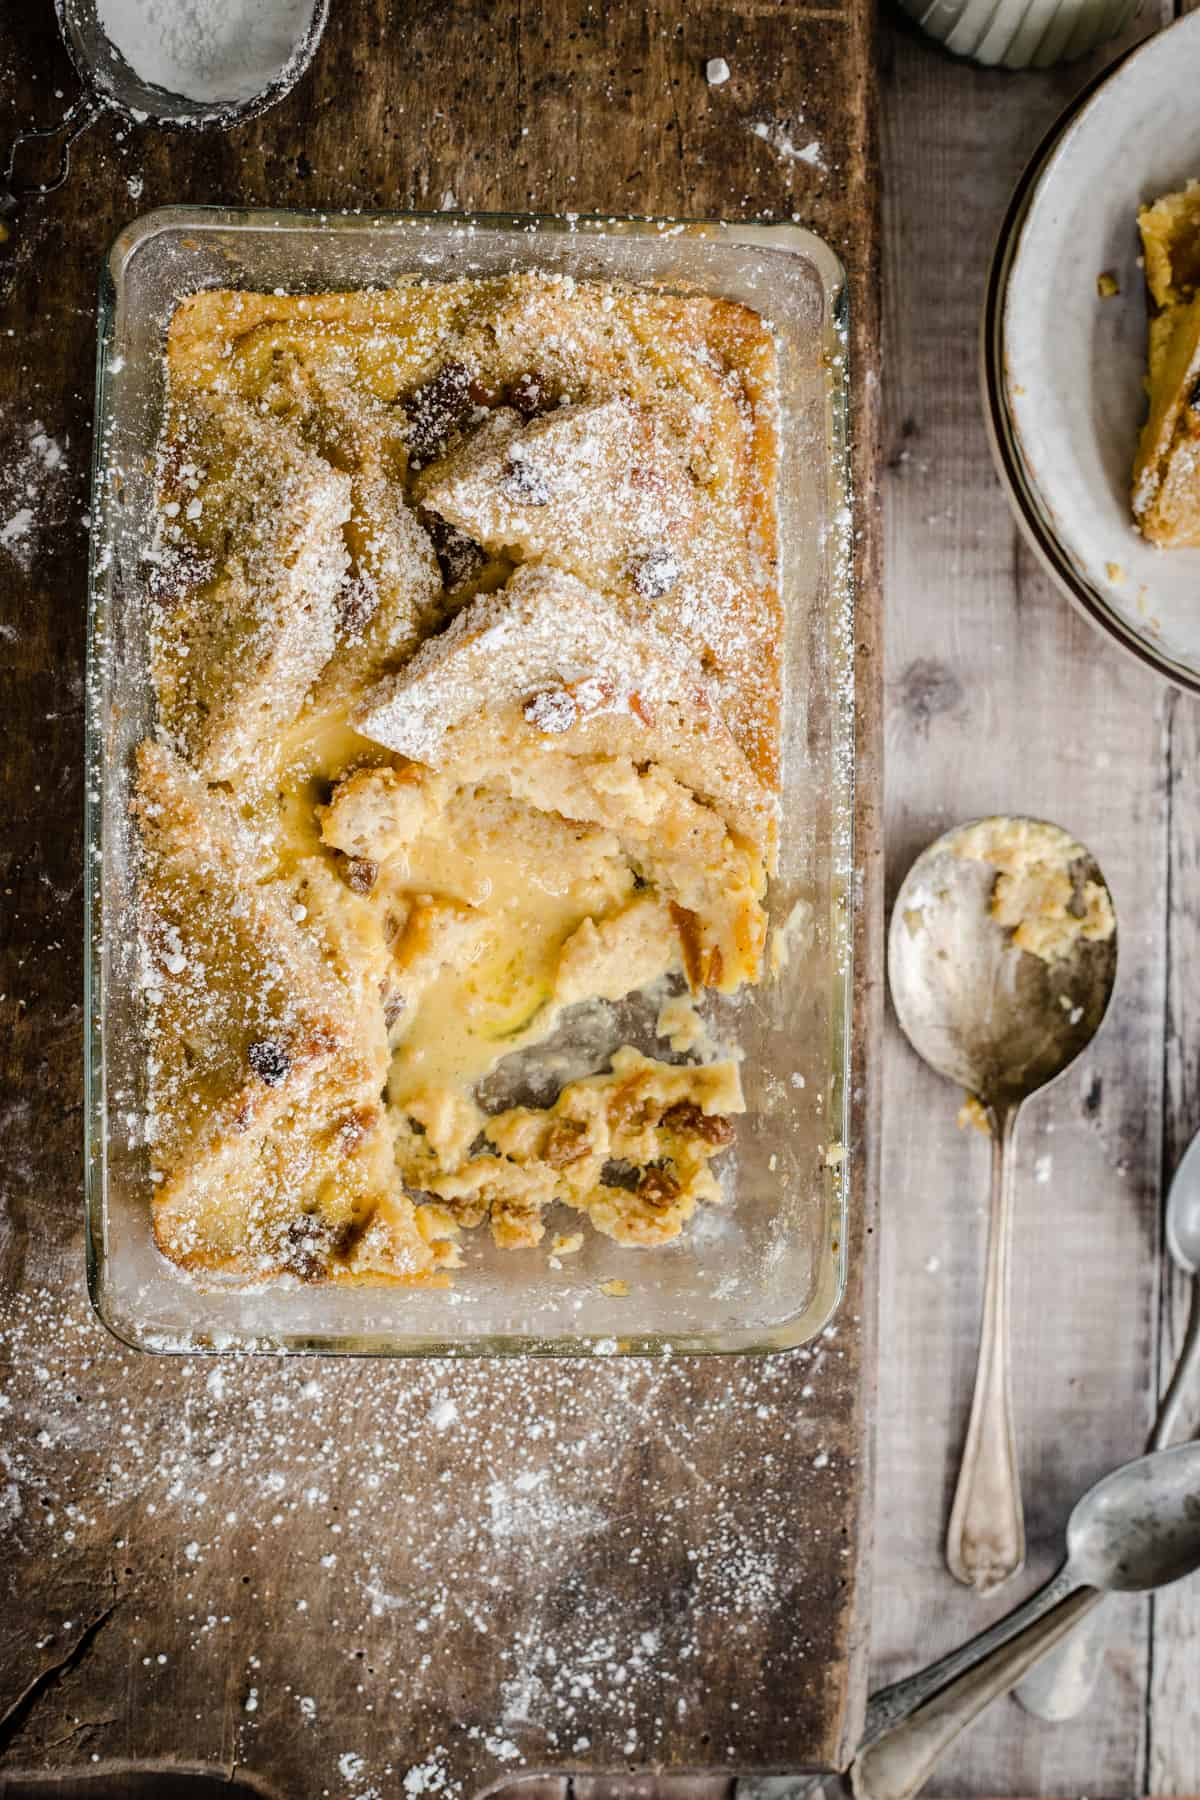 bread and butter pudding in a serving dish with a portion removed